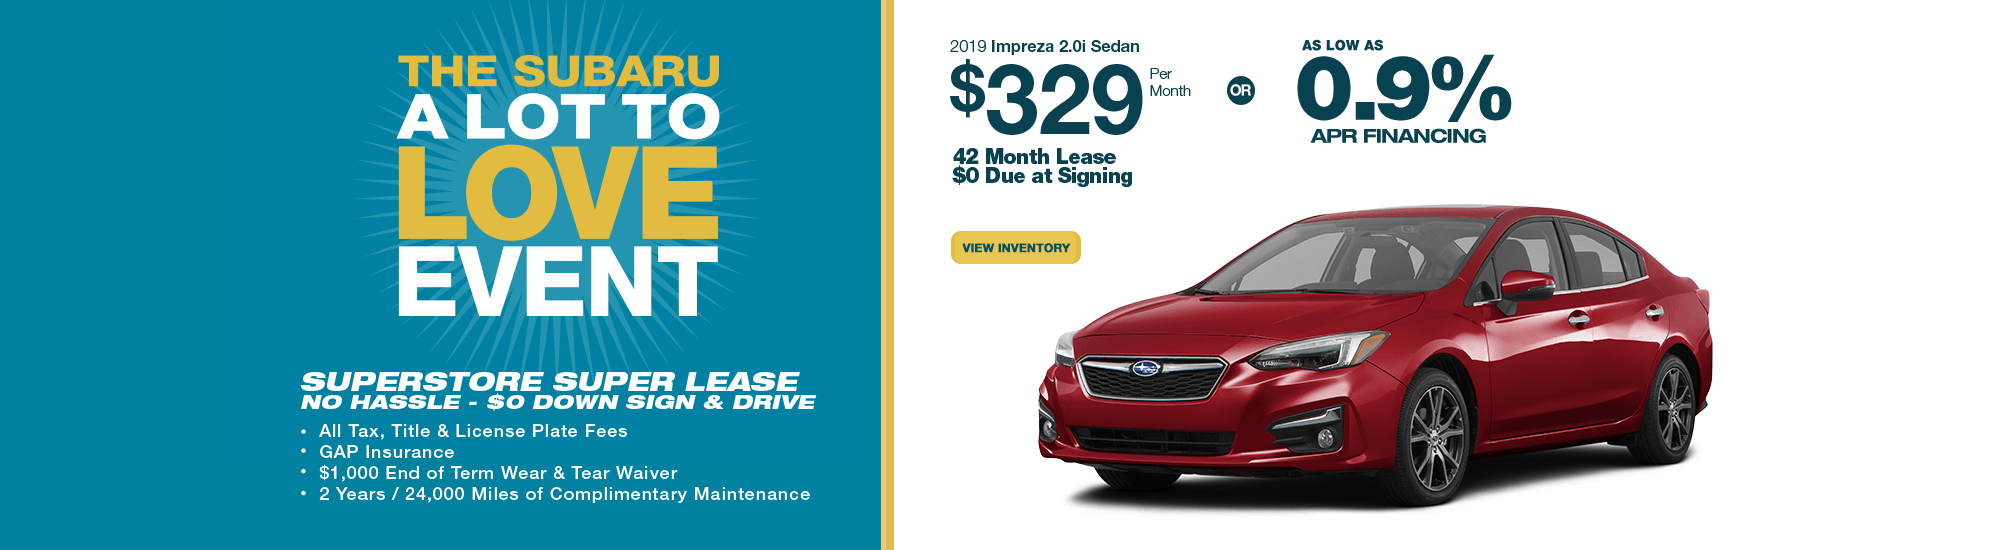 2019 Impreza 2.0i Sedan lease or finance special at Subaru Superstore of Chandler